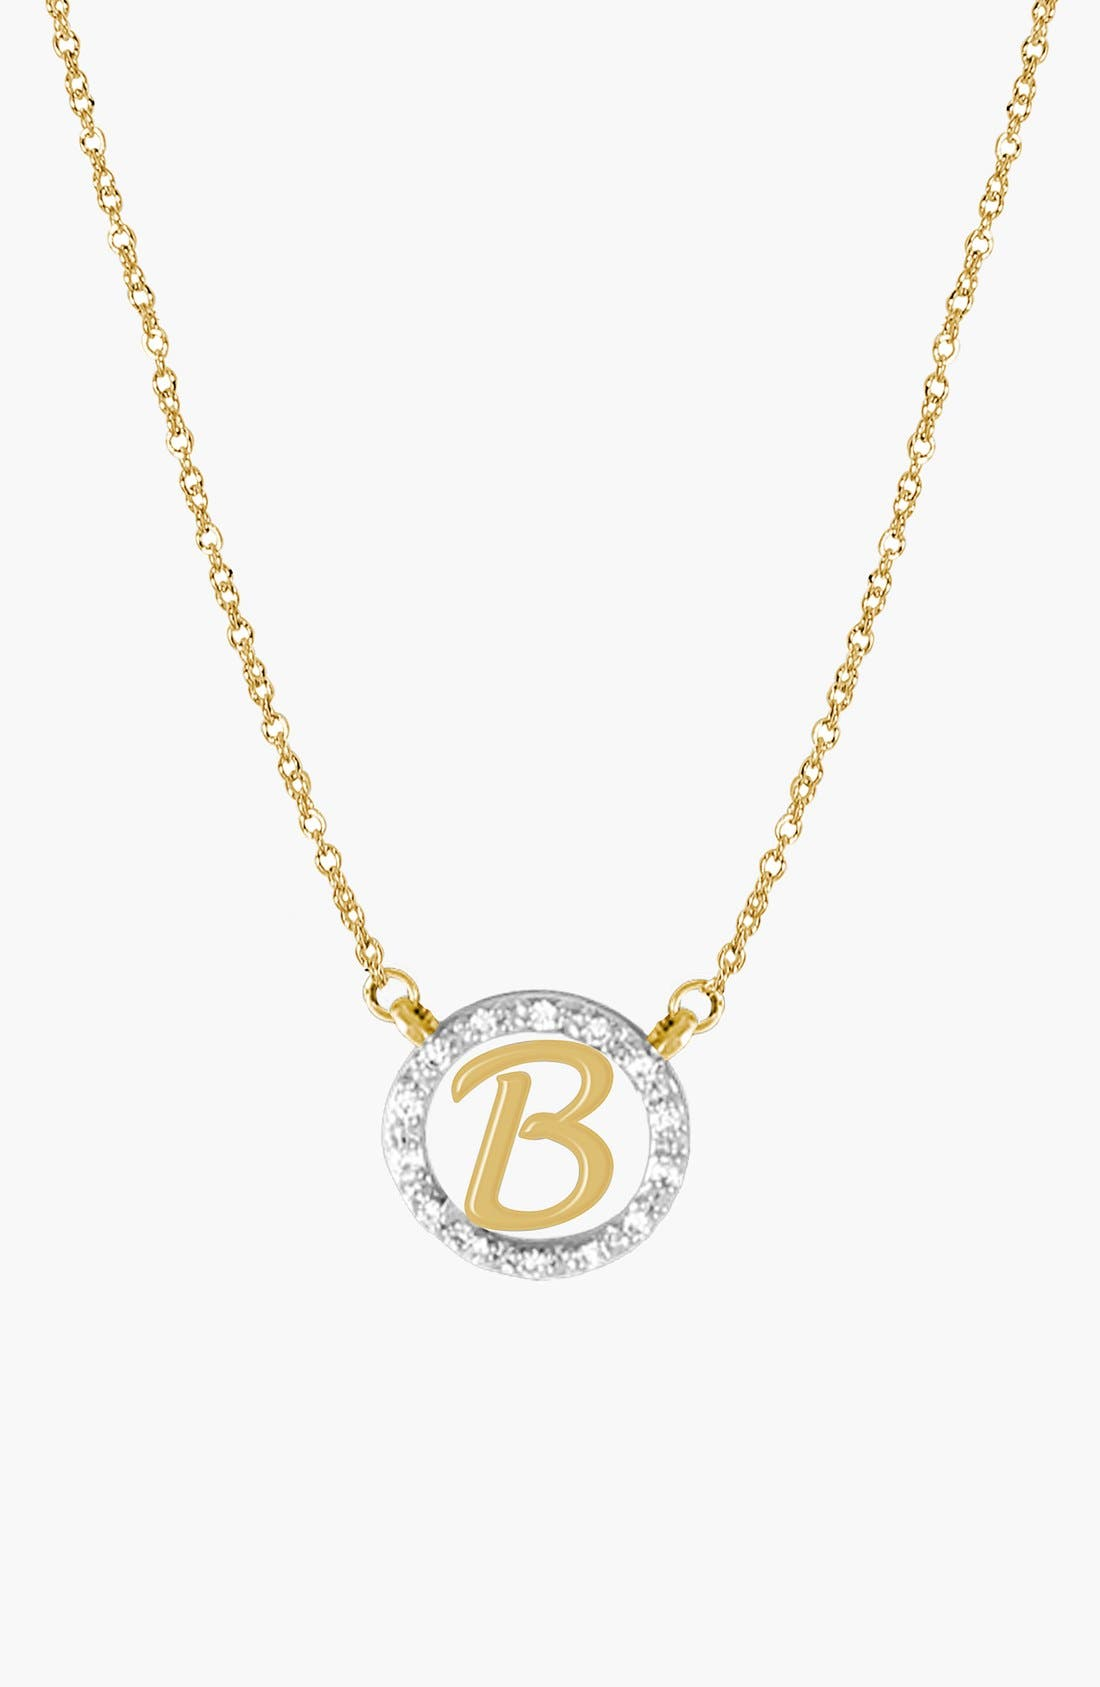 Diamond Pavé Initial Pendant Necklace,                             Main thumbnail 1, color,                             YELLOW GOLD - B